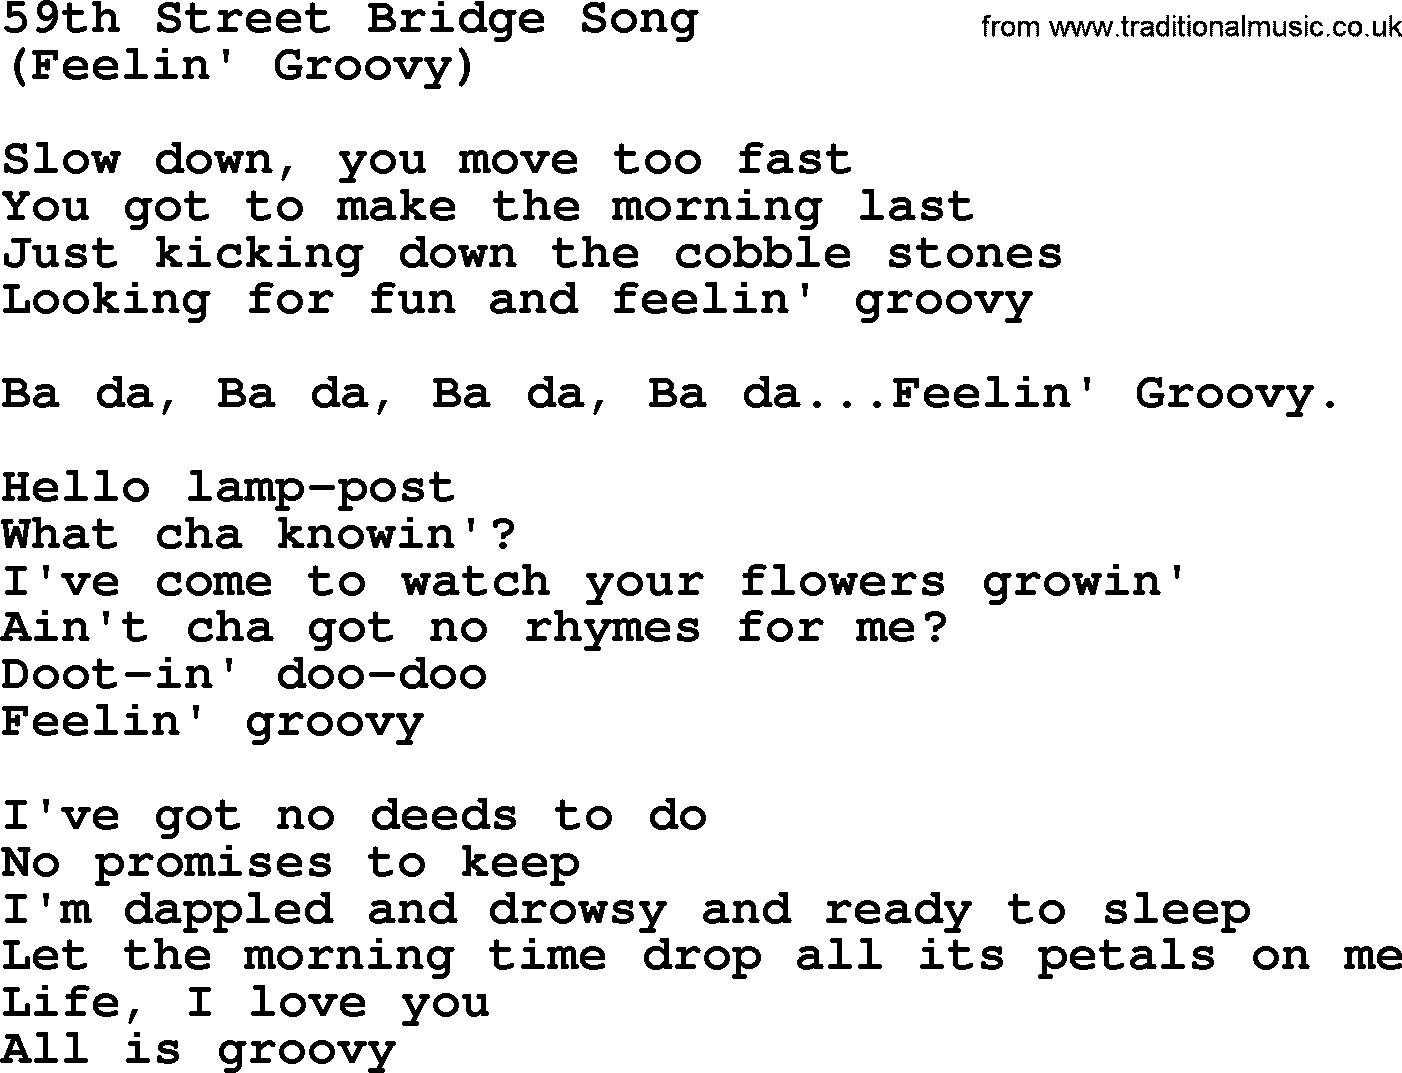 59th street bridge song by the byrds lyrics with pdf the byrds song 59th street bridge song lyrics hexwebz Images